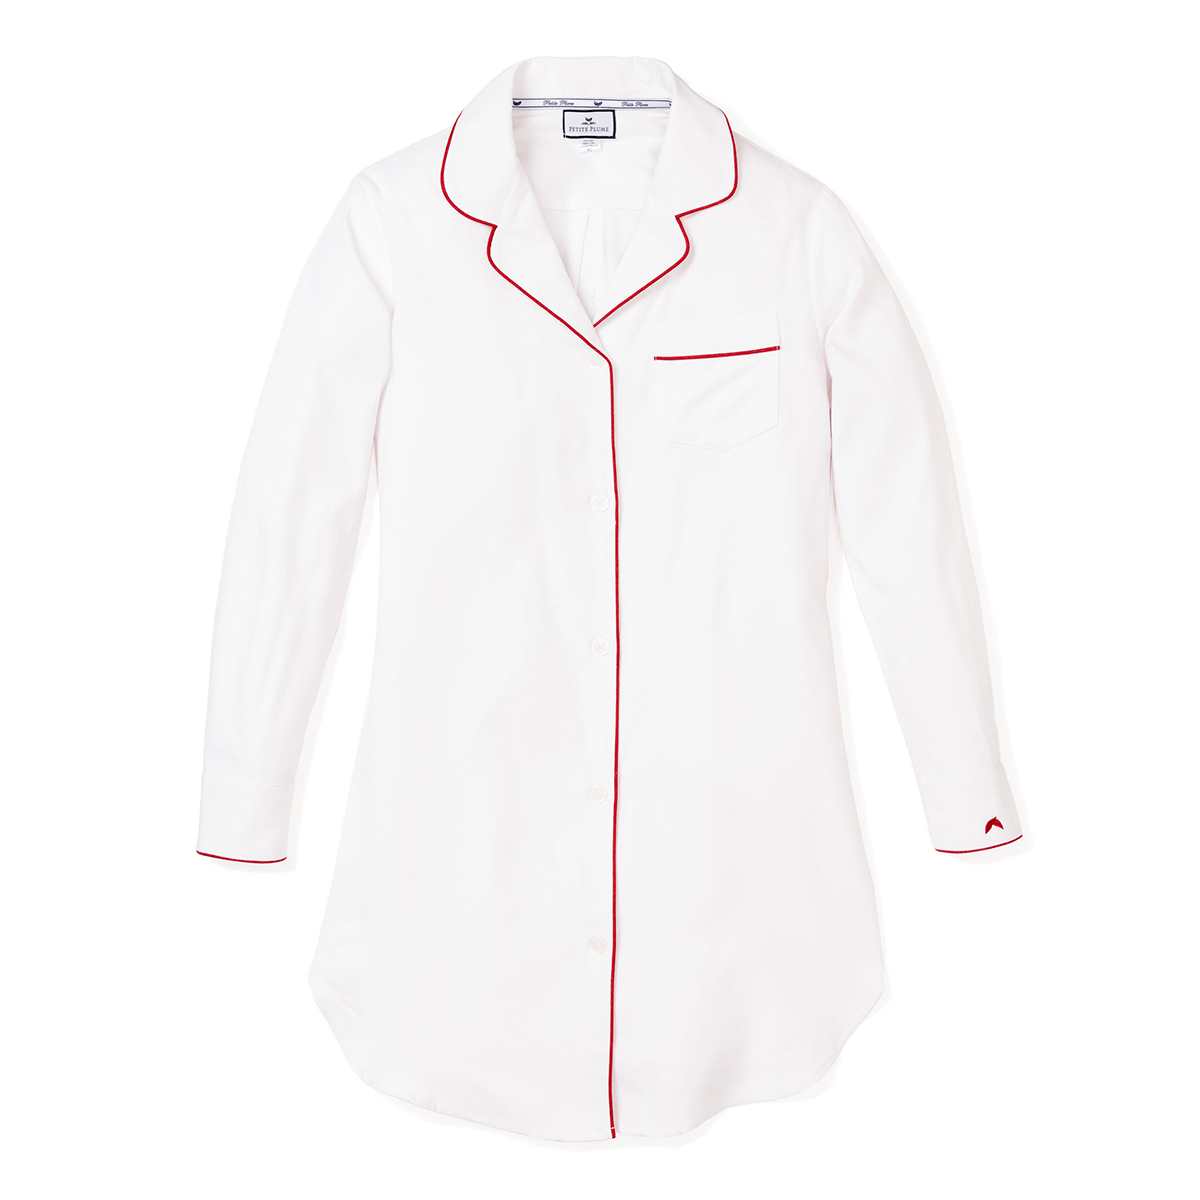 Petite Plume Women's Night Shirt with Red Piping